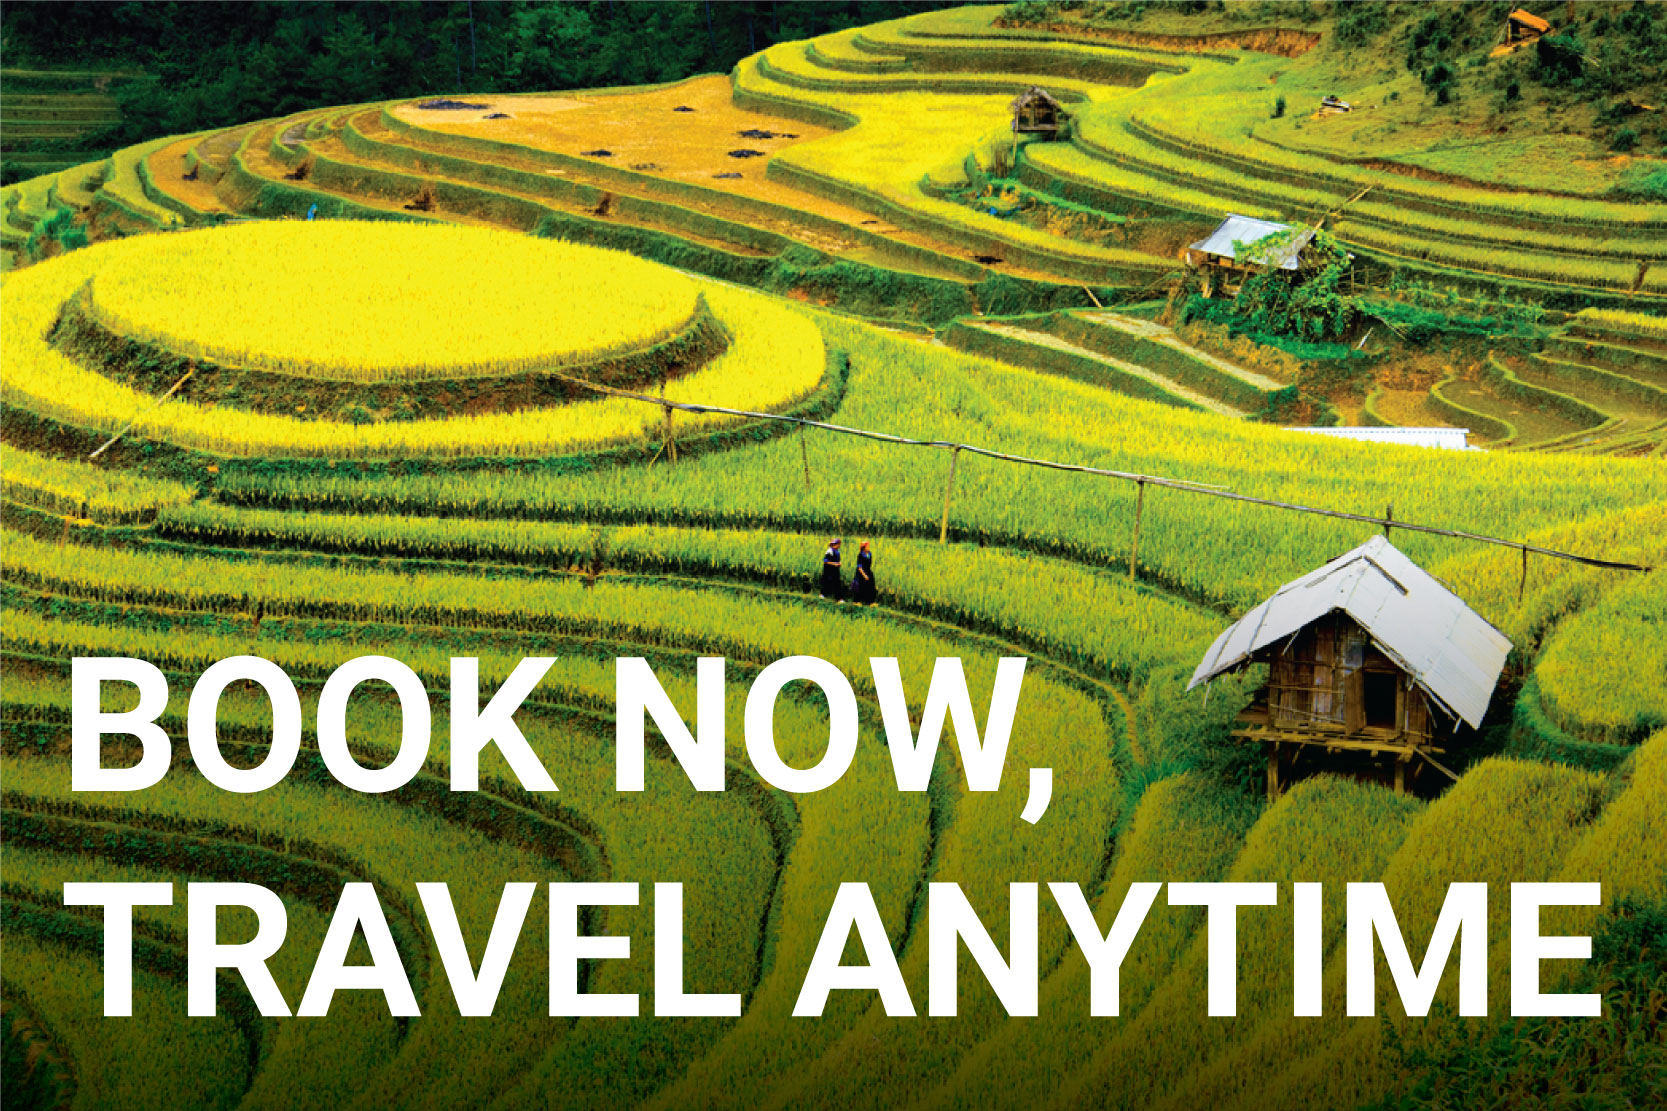 book now travel anytime promotion